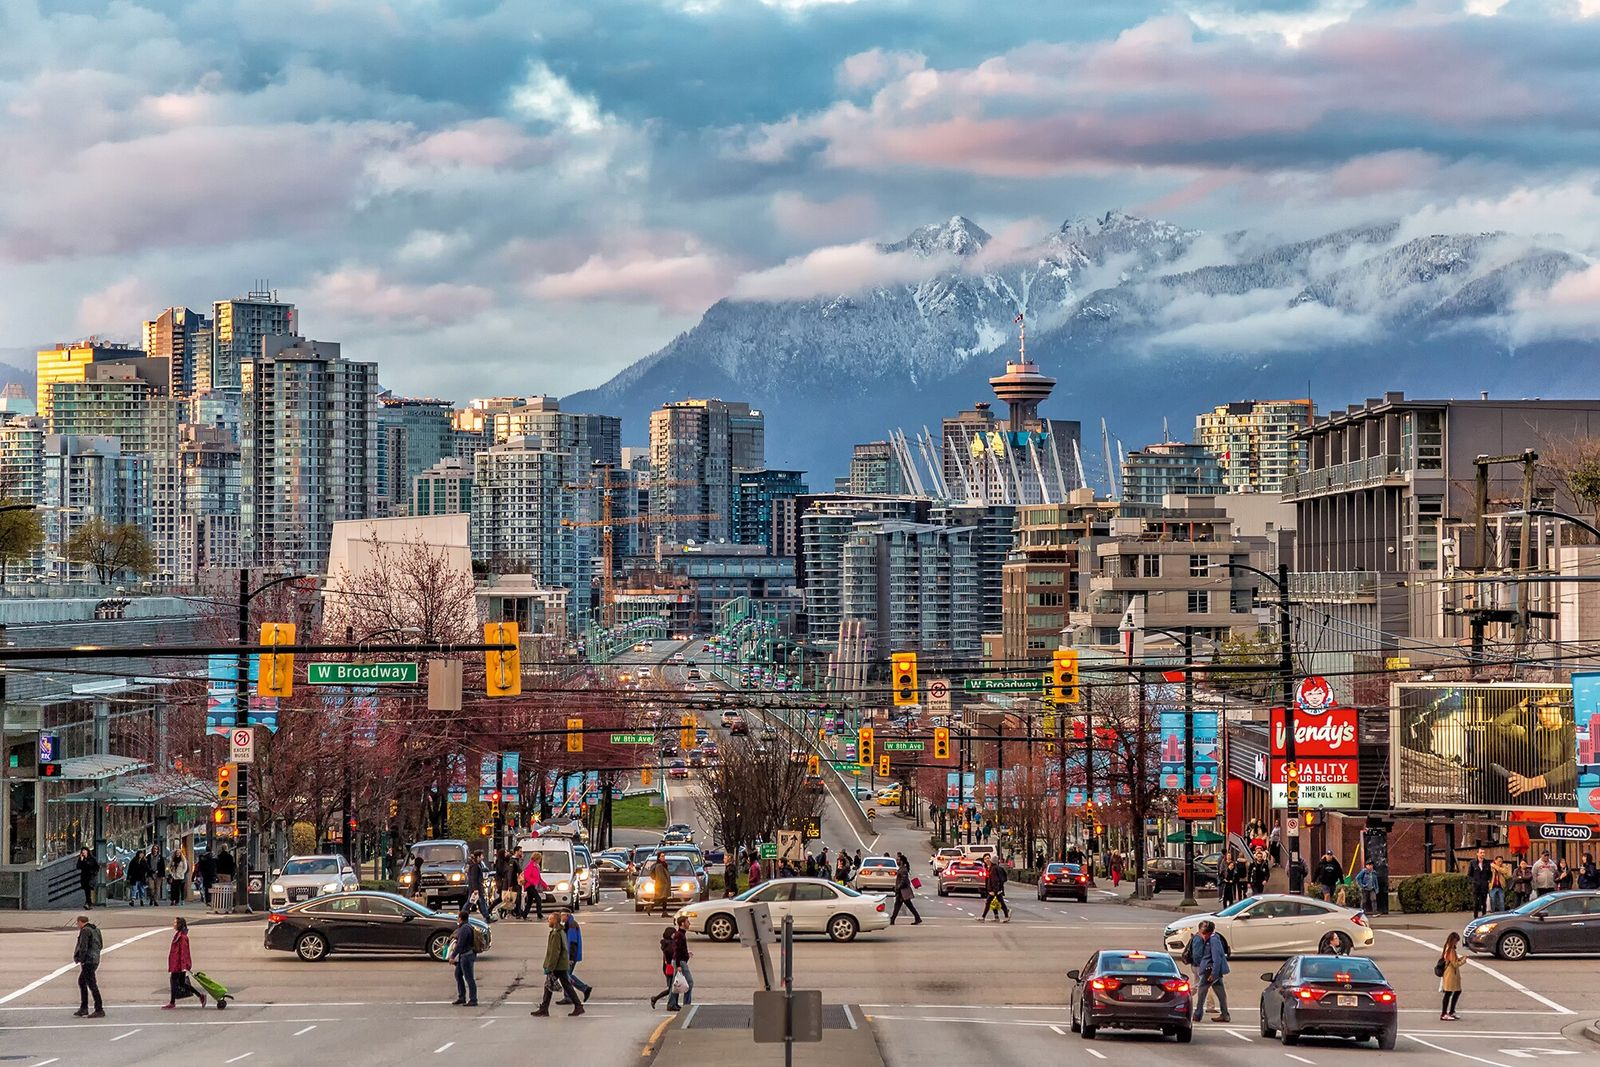 Vancouver's downtown, framed by snow-capped mountains.